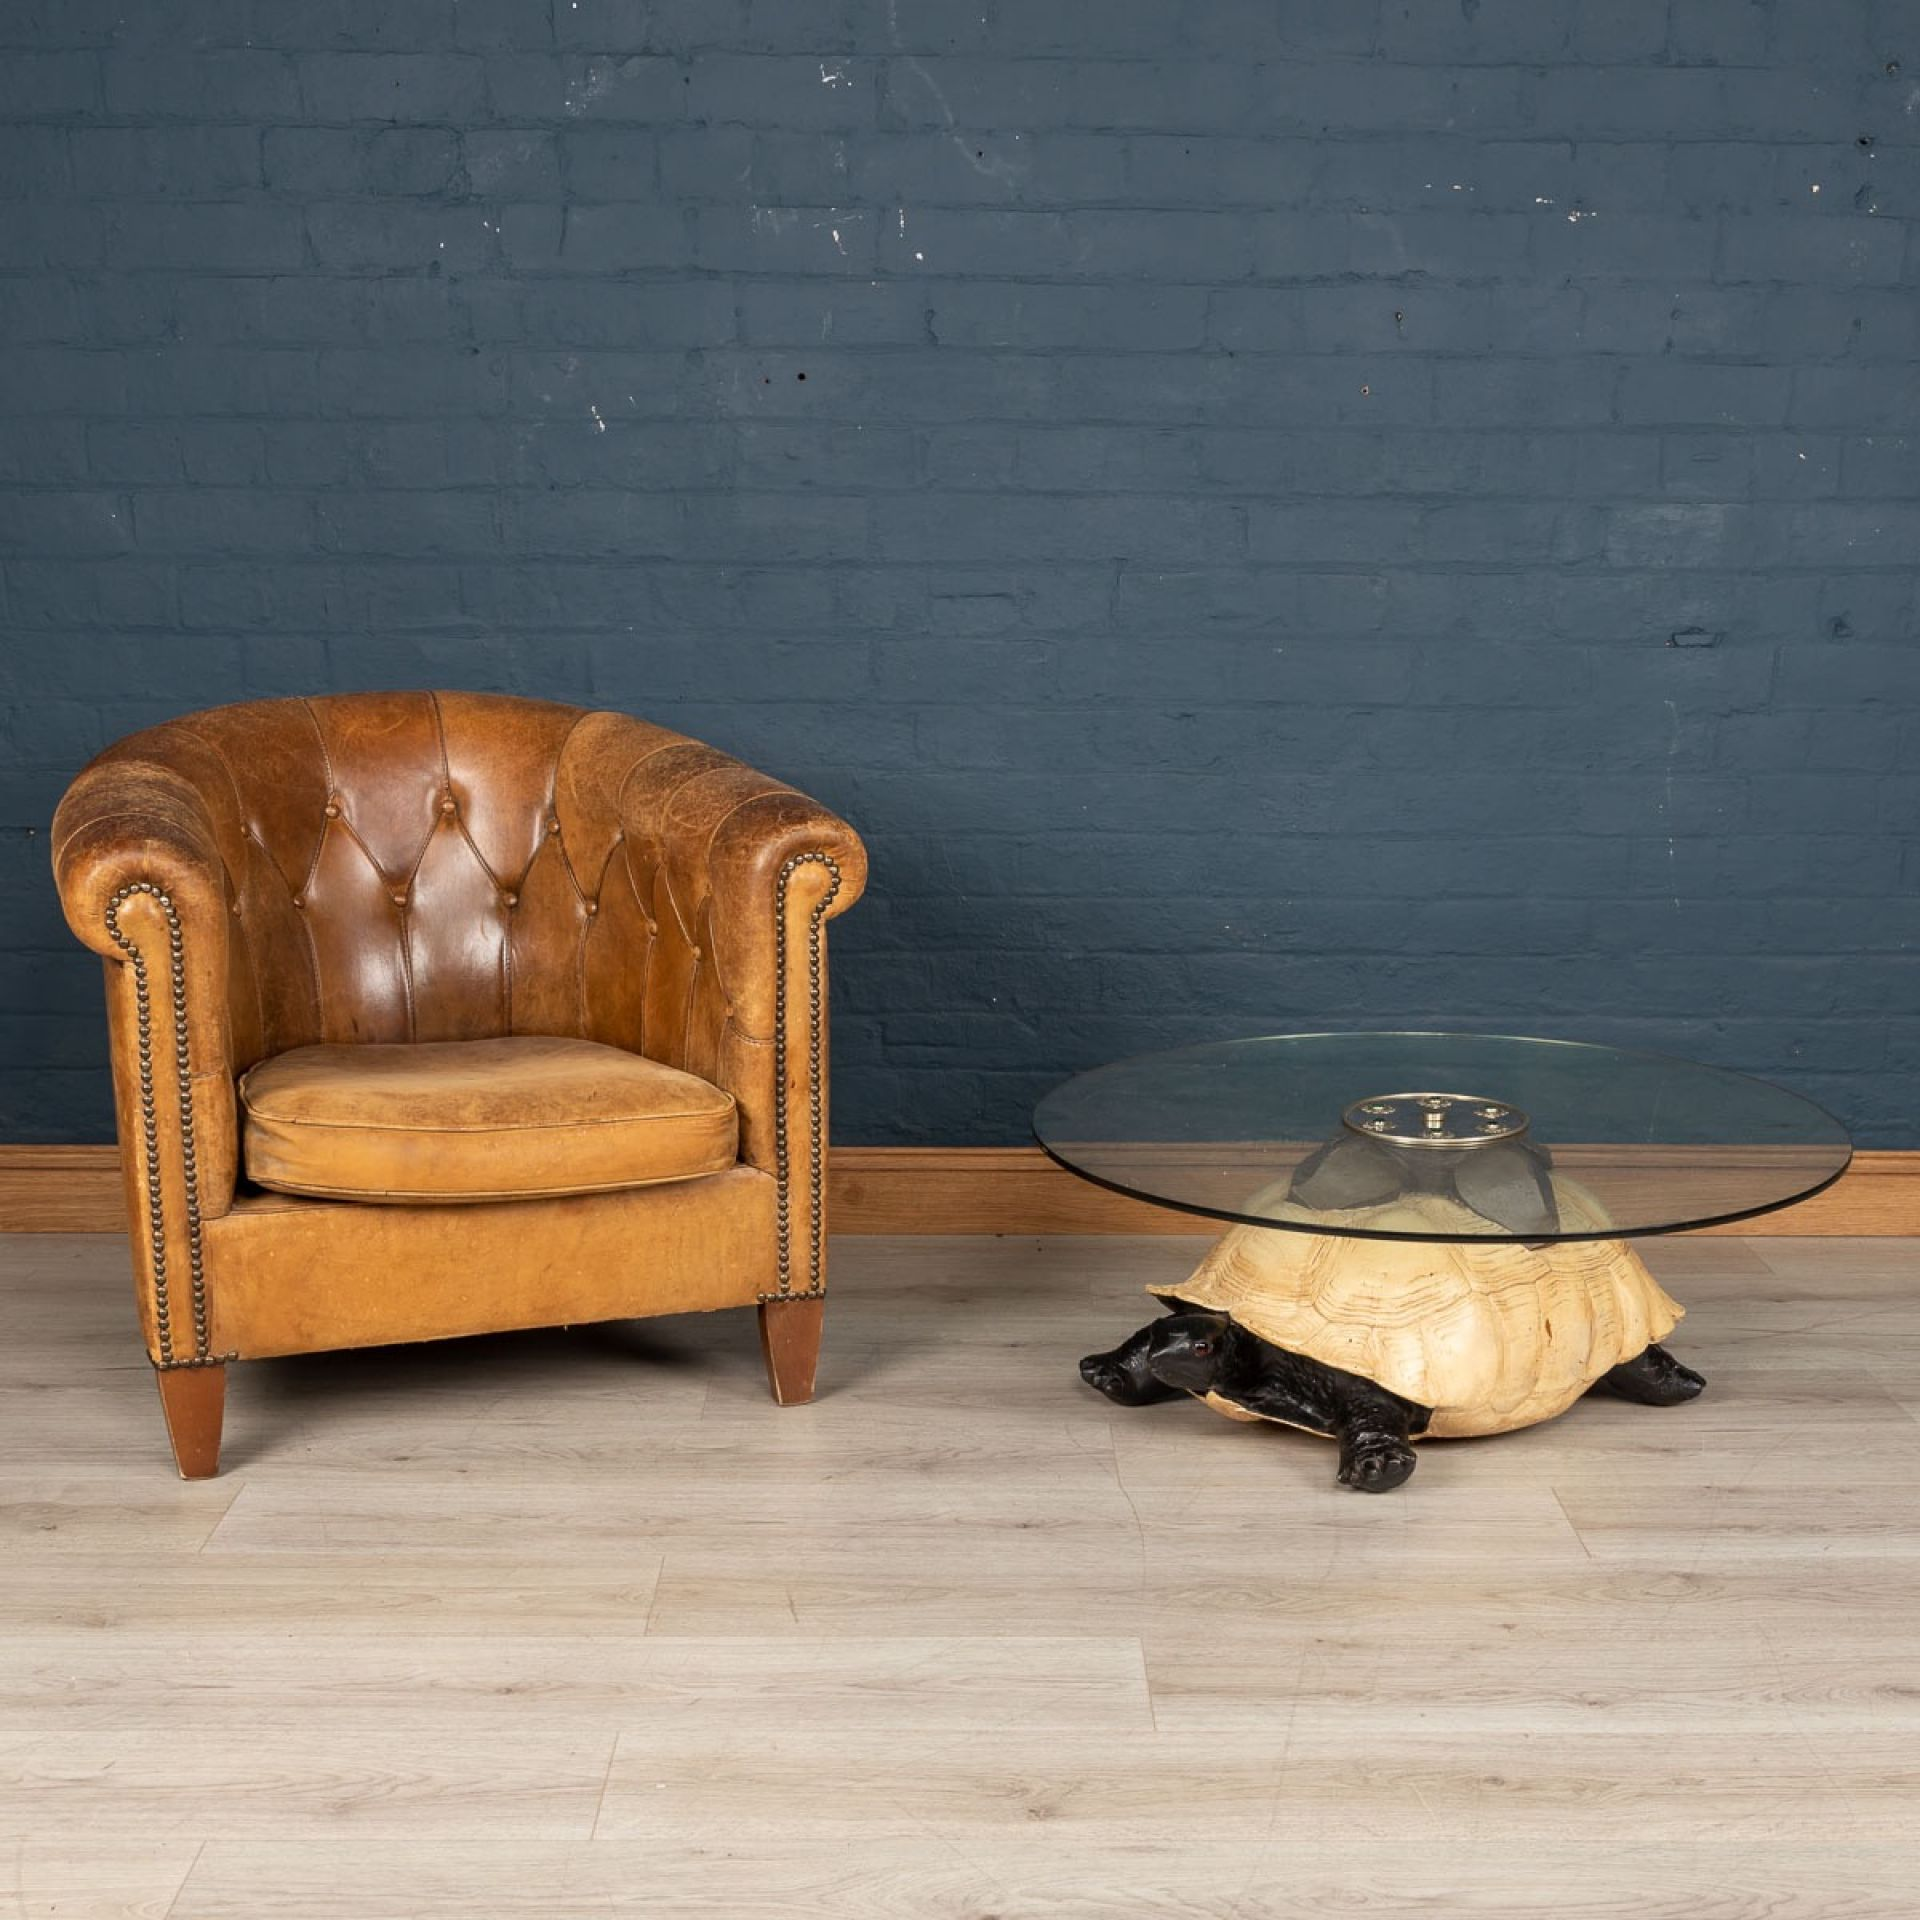 UNUSUAL COFFEE TABLE IN THE FORM OF A TURTLE BY ANTHONY REDMILE, LONDON c.1970